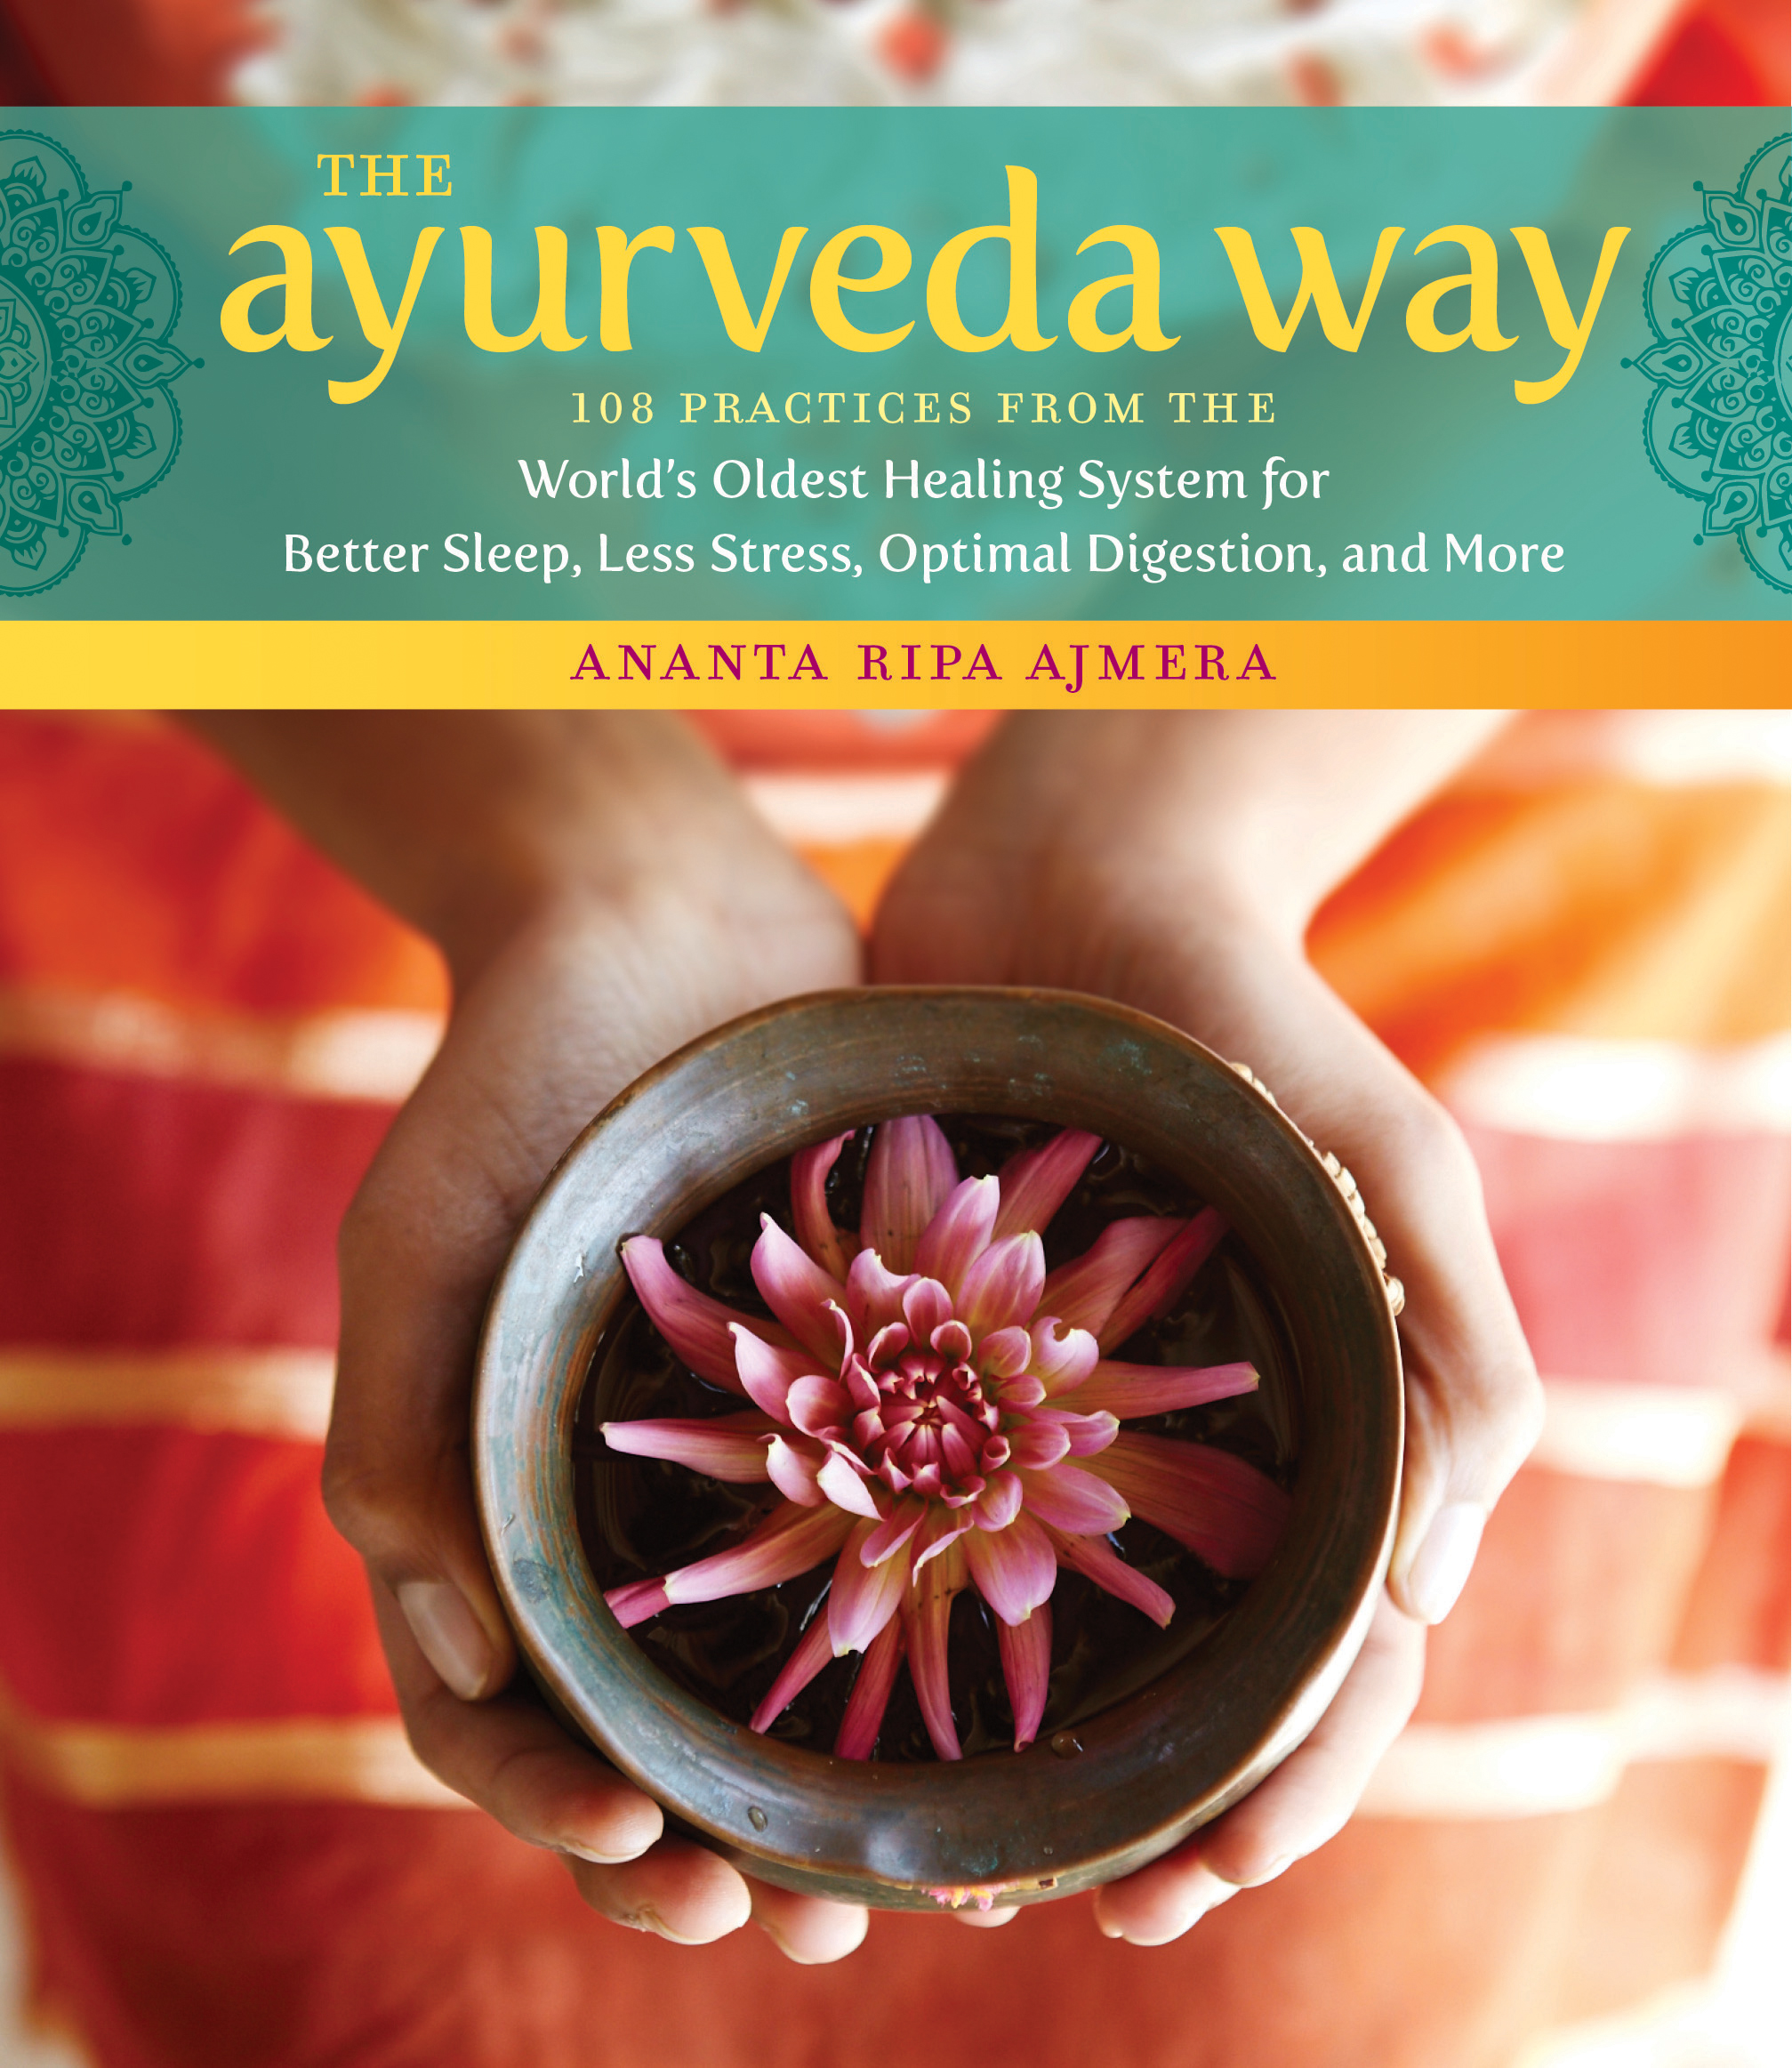 The Ayurveda Way 108 Practices from the World's Oldest Healing System for Better Sleep, Less Stress, Optimal Digestion, and More - Ananta Ripa Ajmera